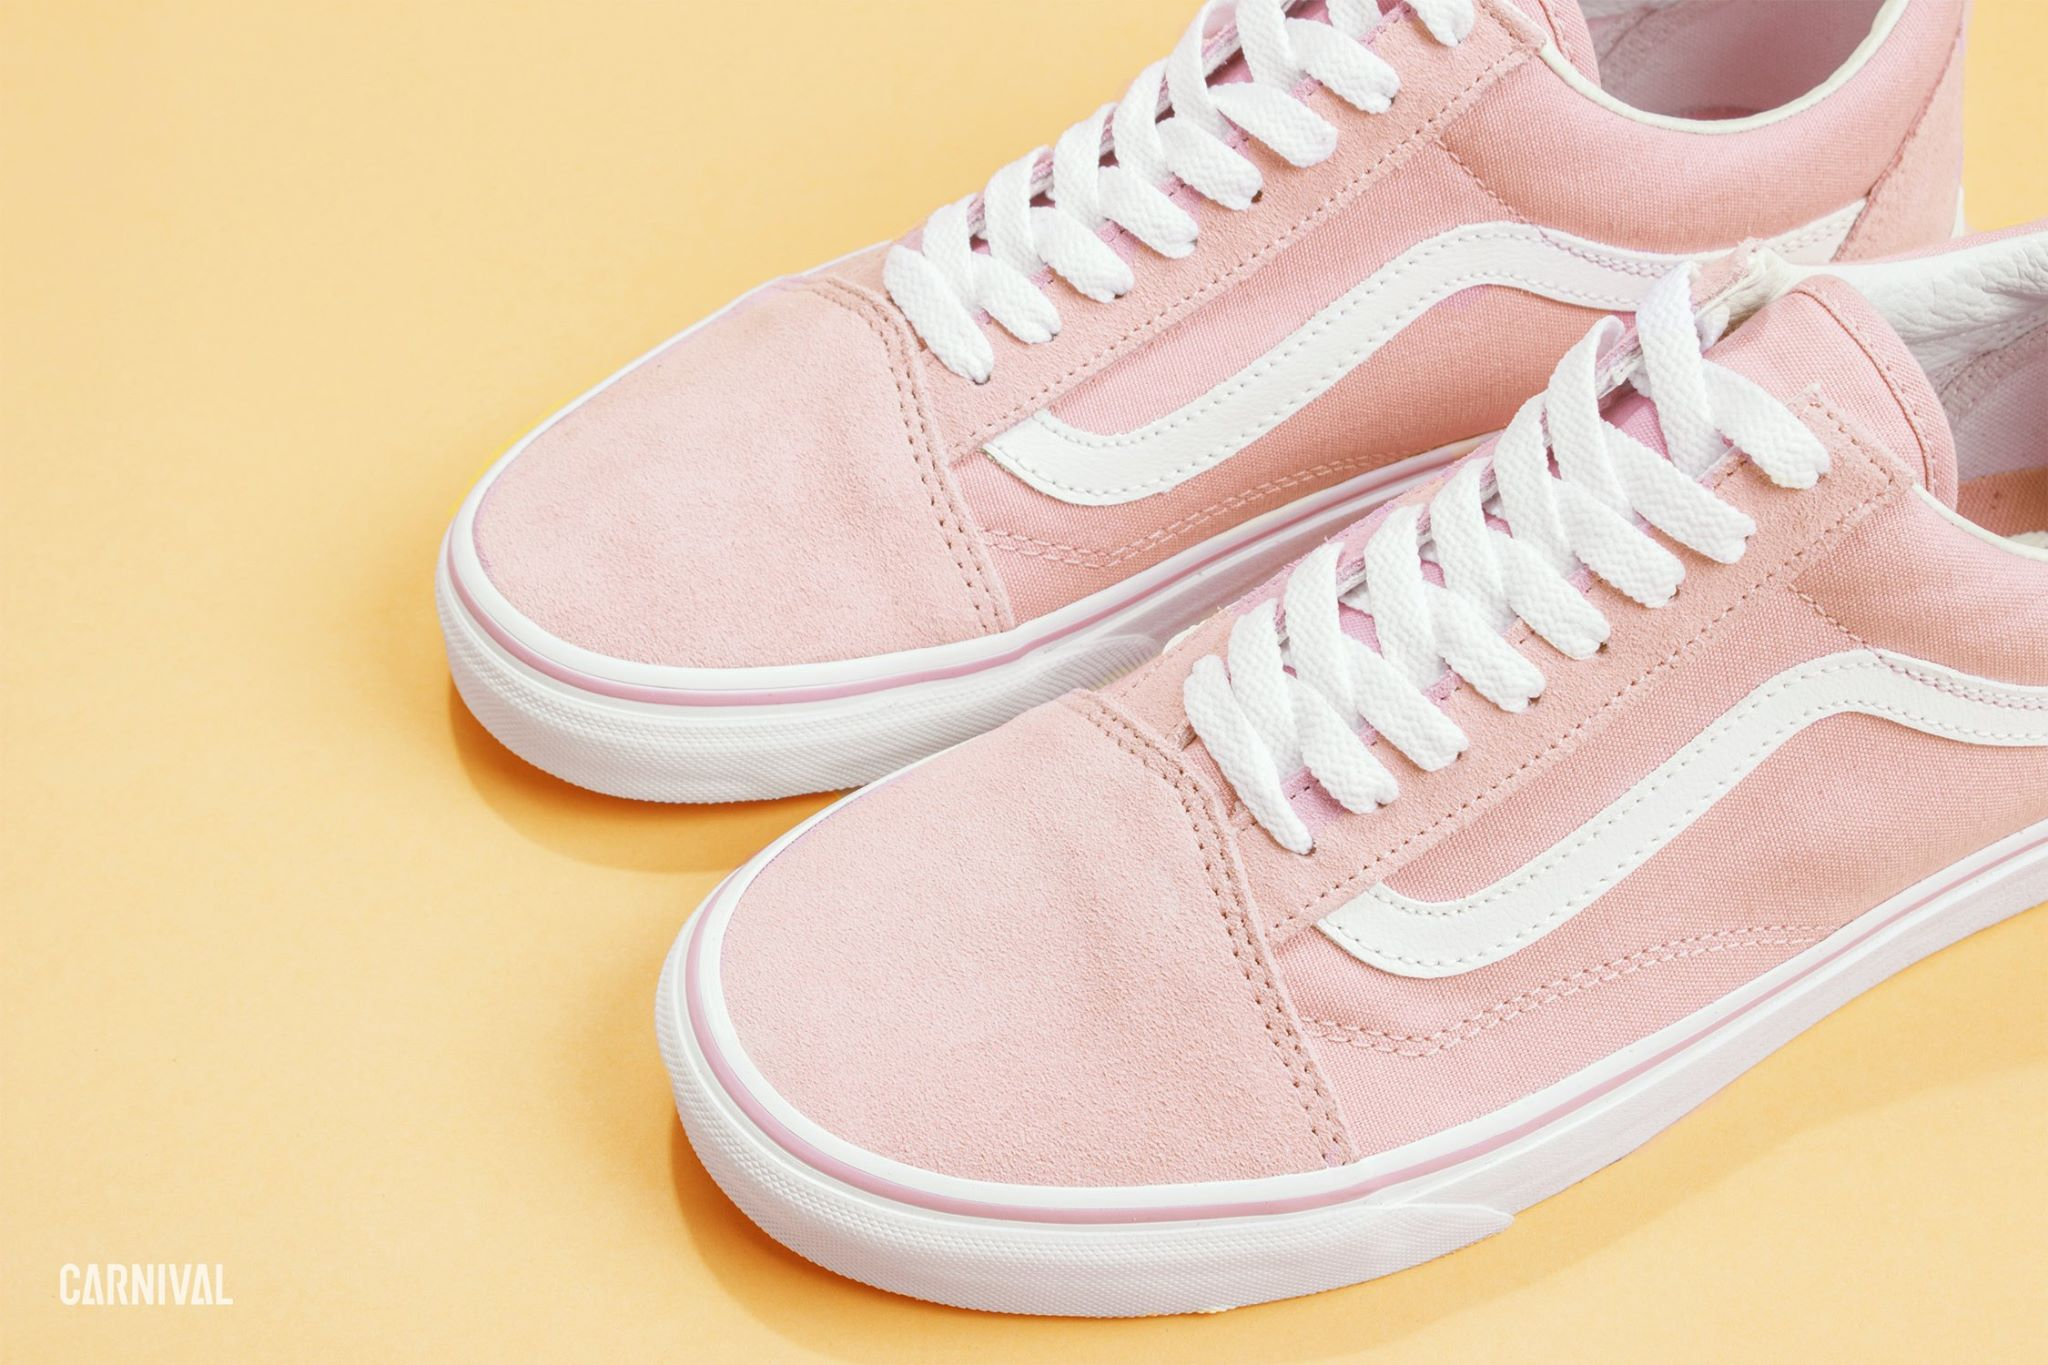 Vans Shoes White Rock